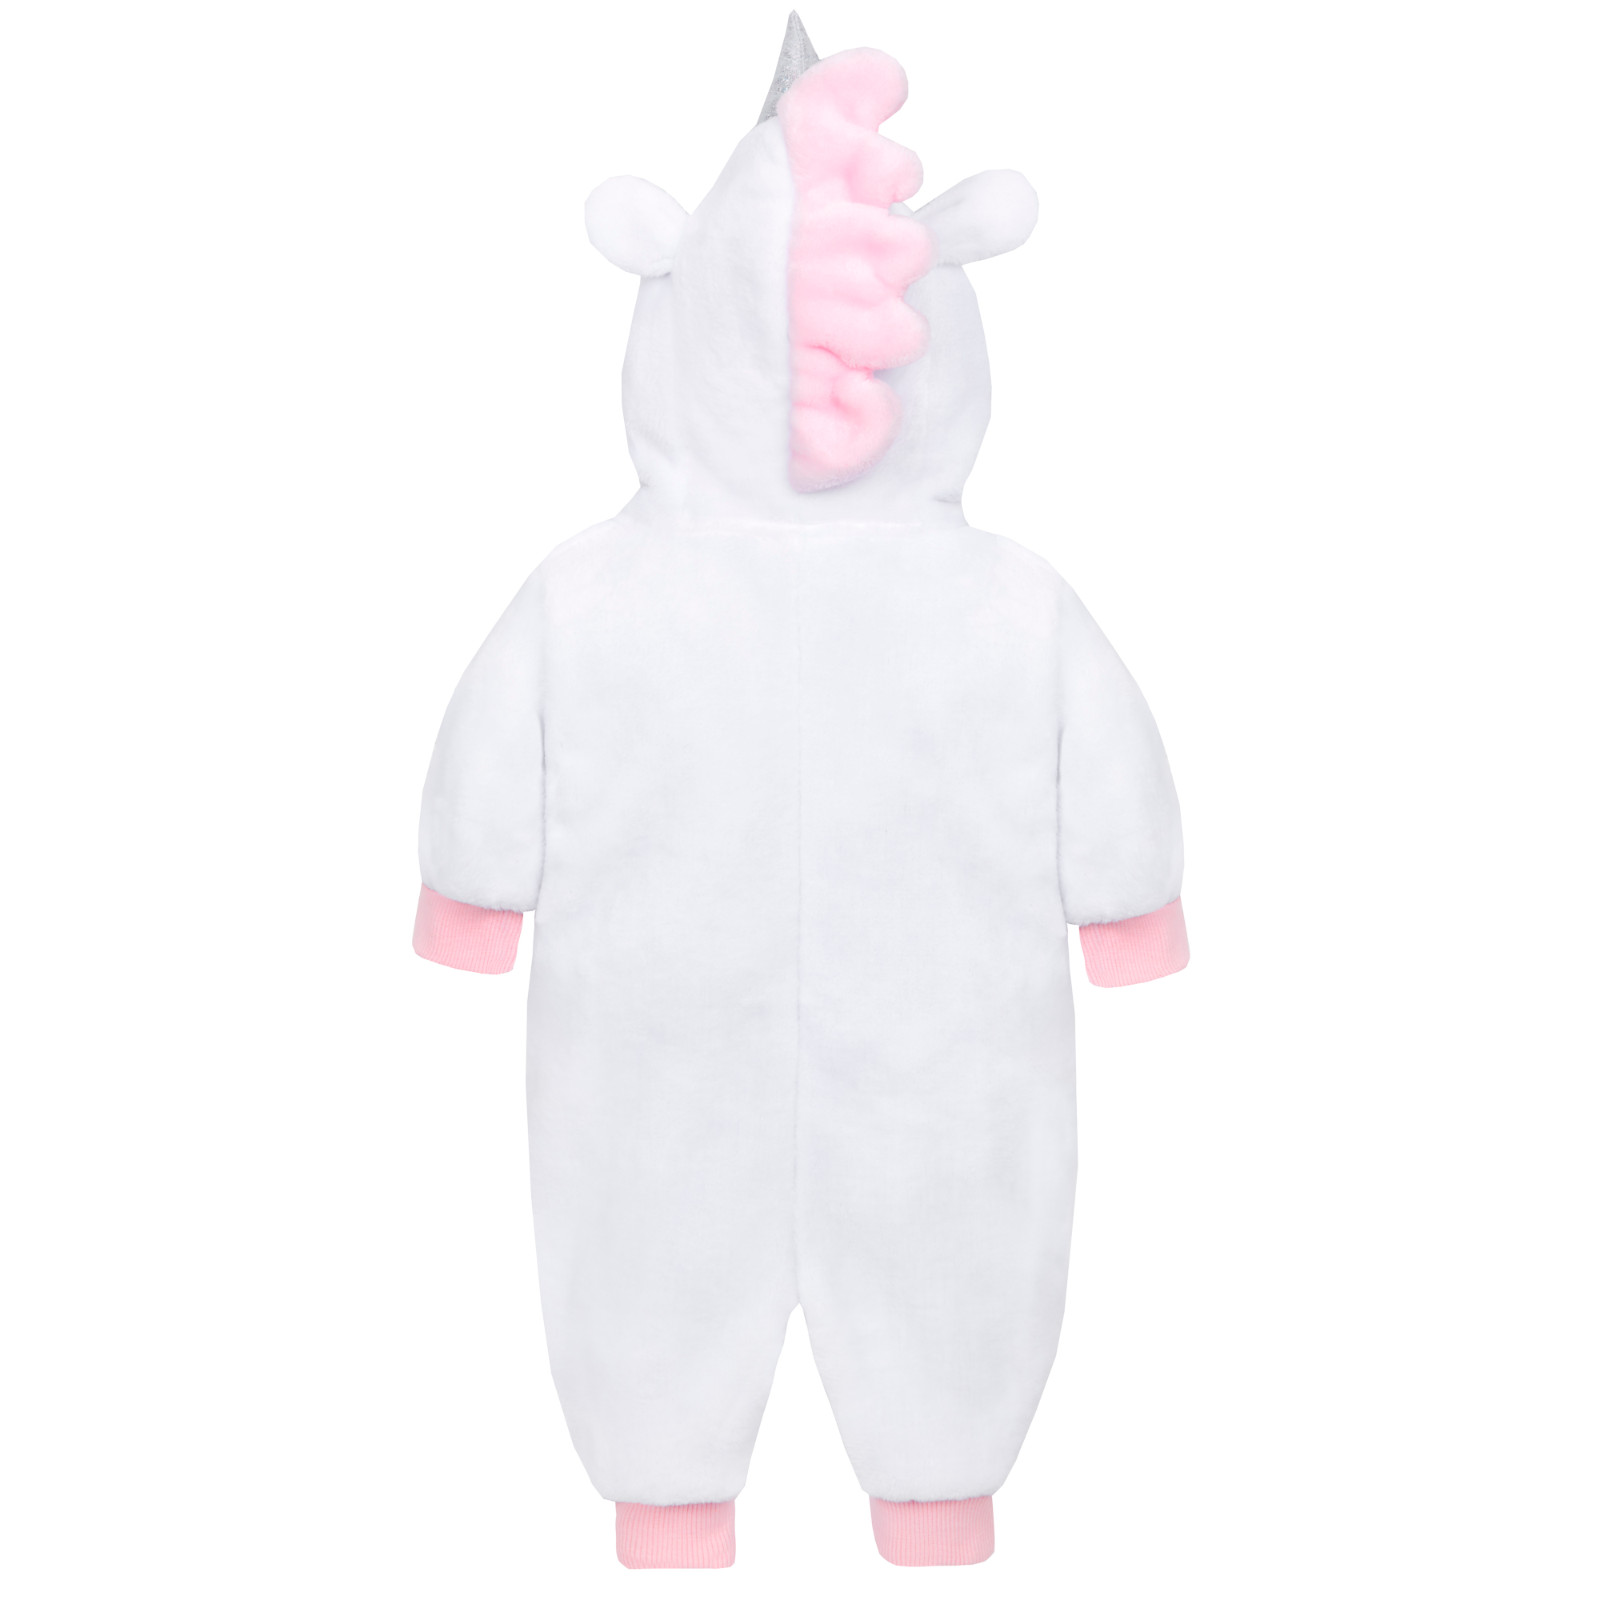 f7990e37b Baby Girls Novelty Fleece Animal All In One Newborn Winter Pramsuit ...